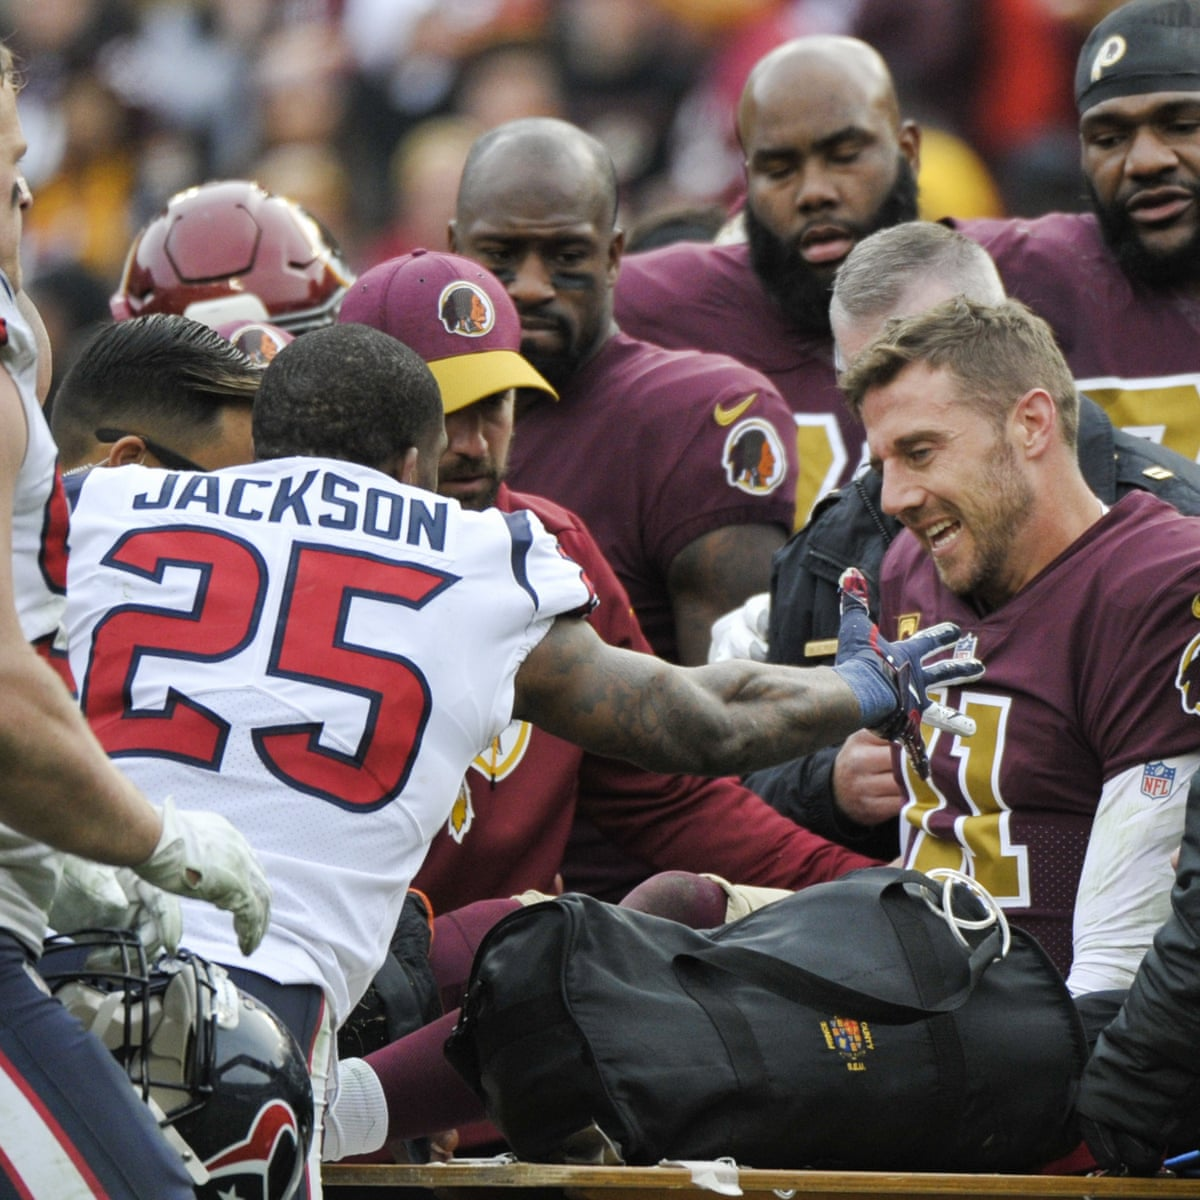 Washington S Alex Smith Battling Infection After Surgery According To Reports Washington The Guardian